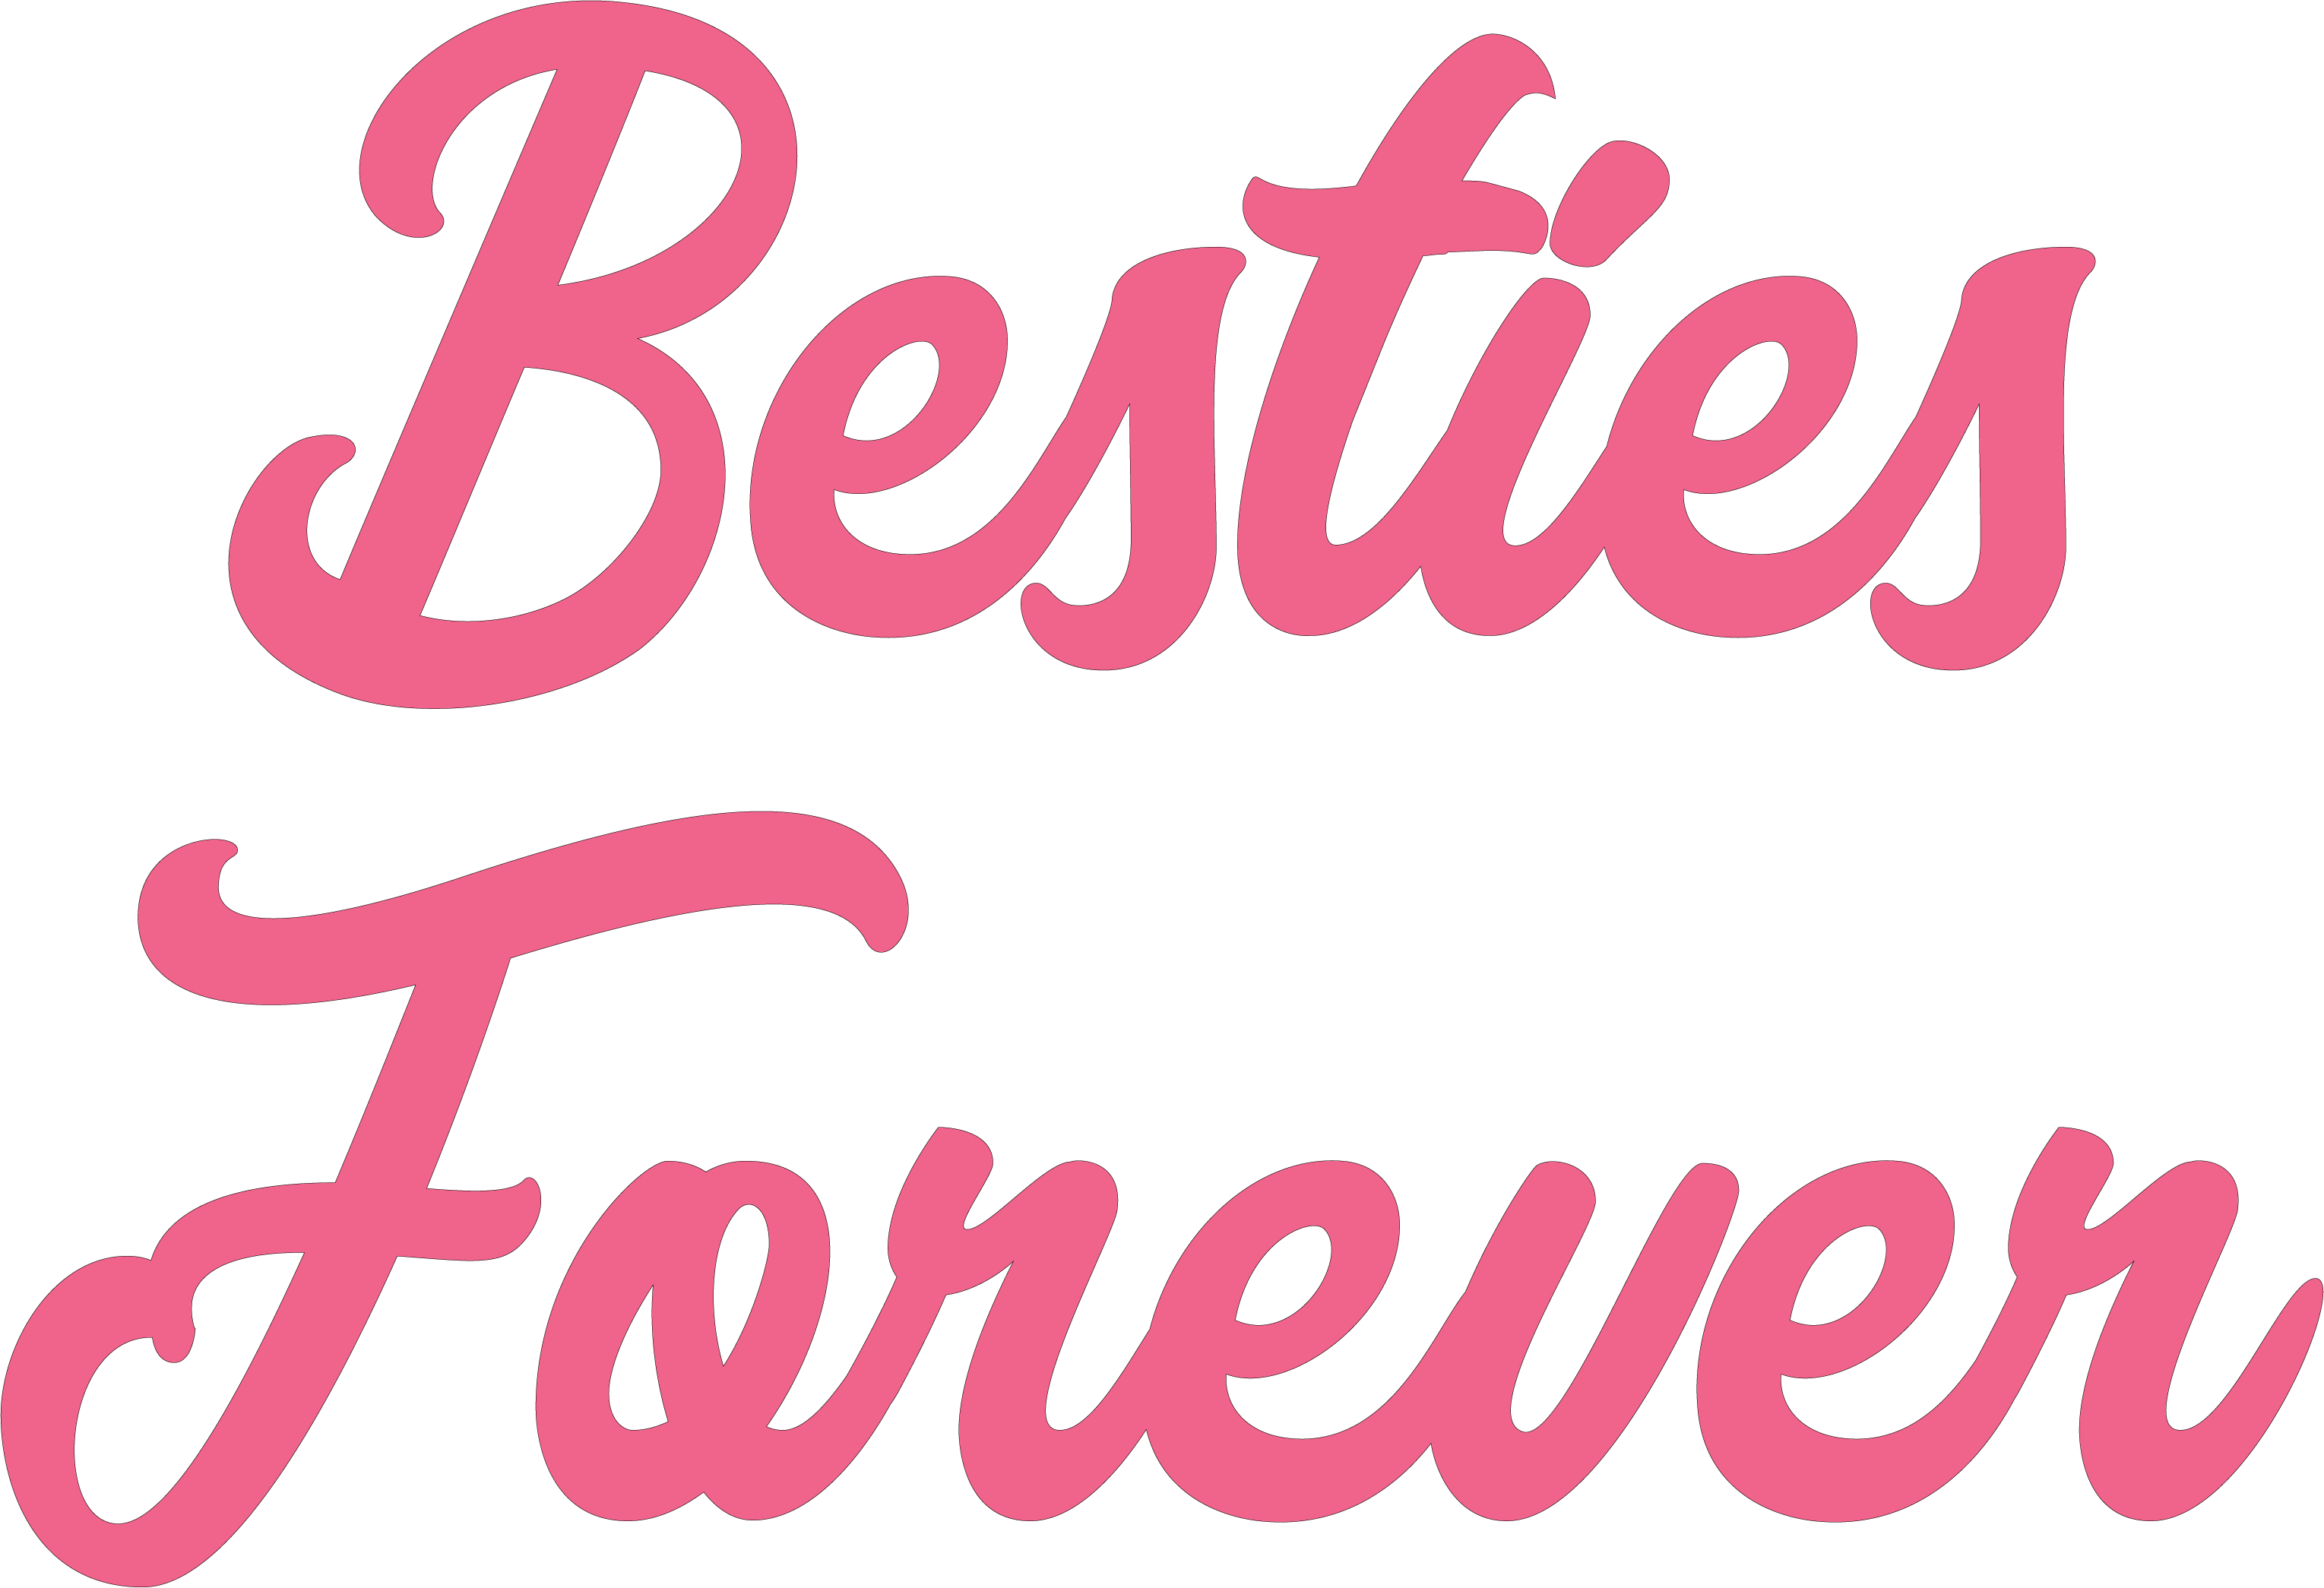 Besties Forever SVG Cut File